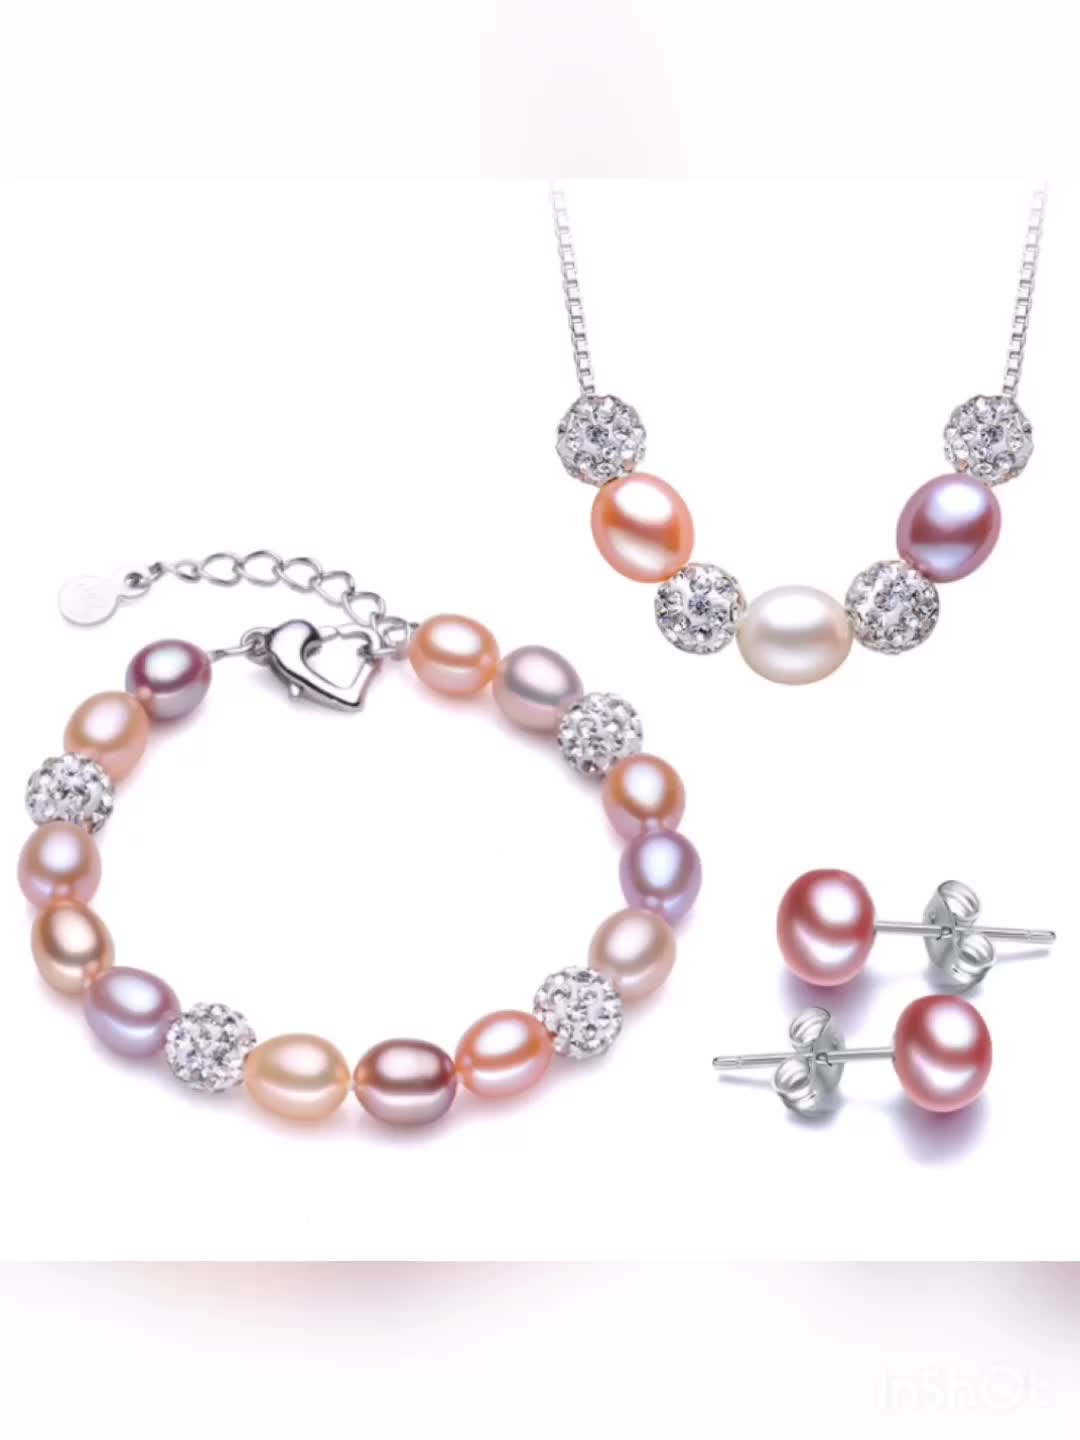 7-8mm real fresh water genuine cultured natural necklace and earring freshwater pearl jewelry set pearl